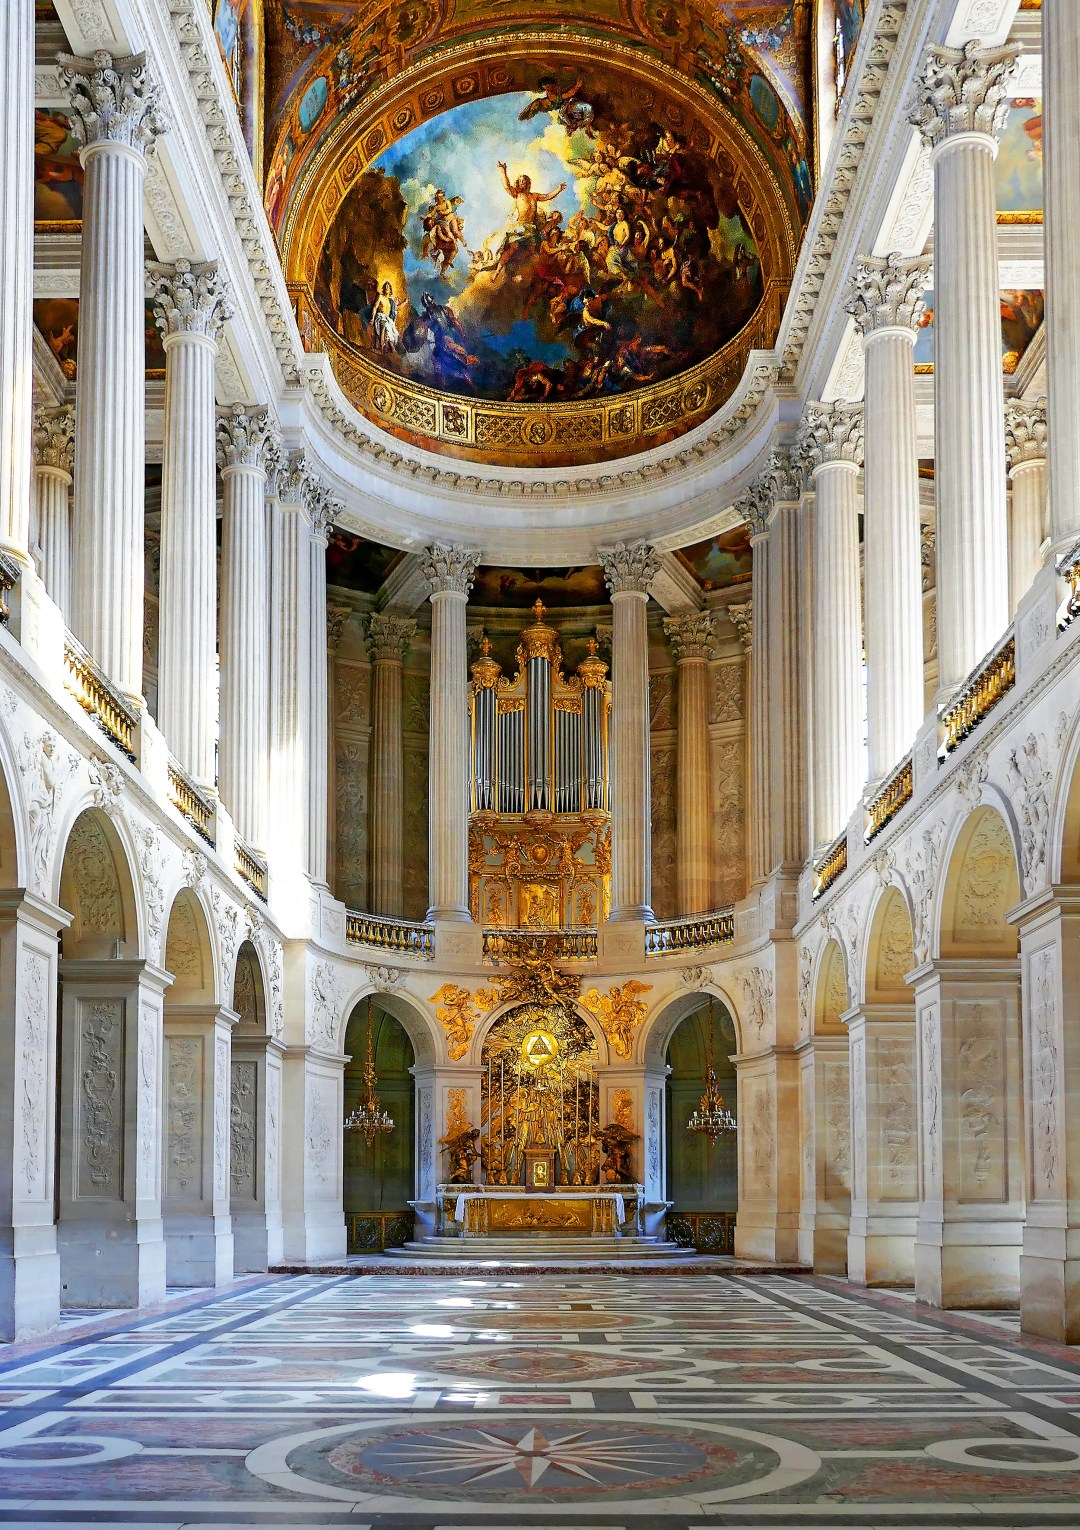 The magnificent chapel in the Palace of Versailles where Marie Antoinette married the King of France